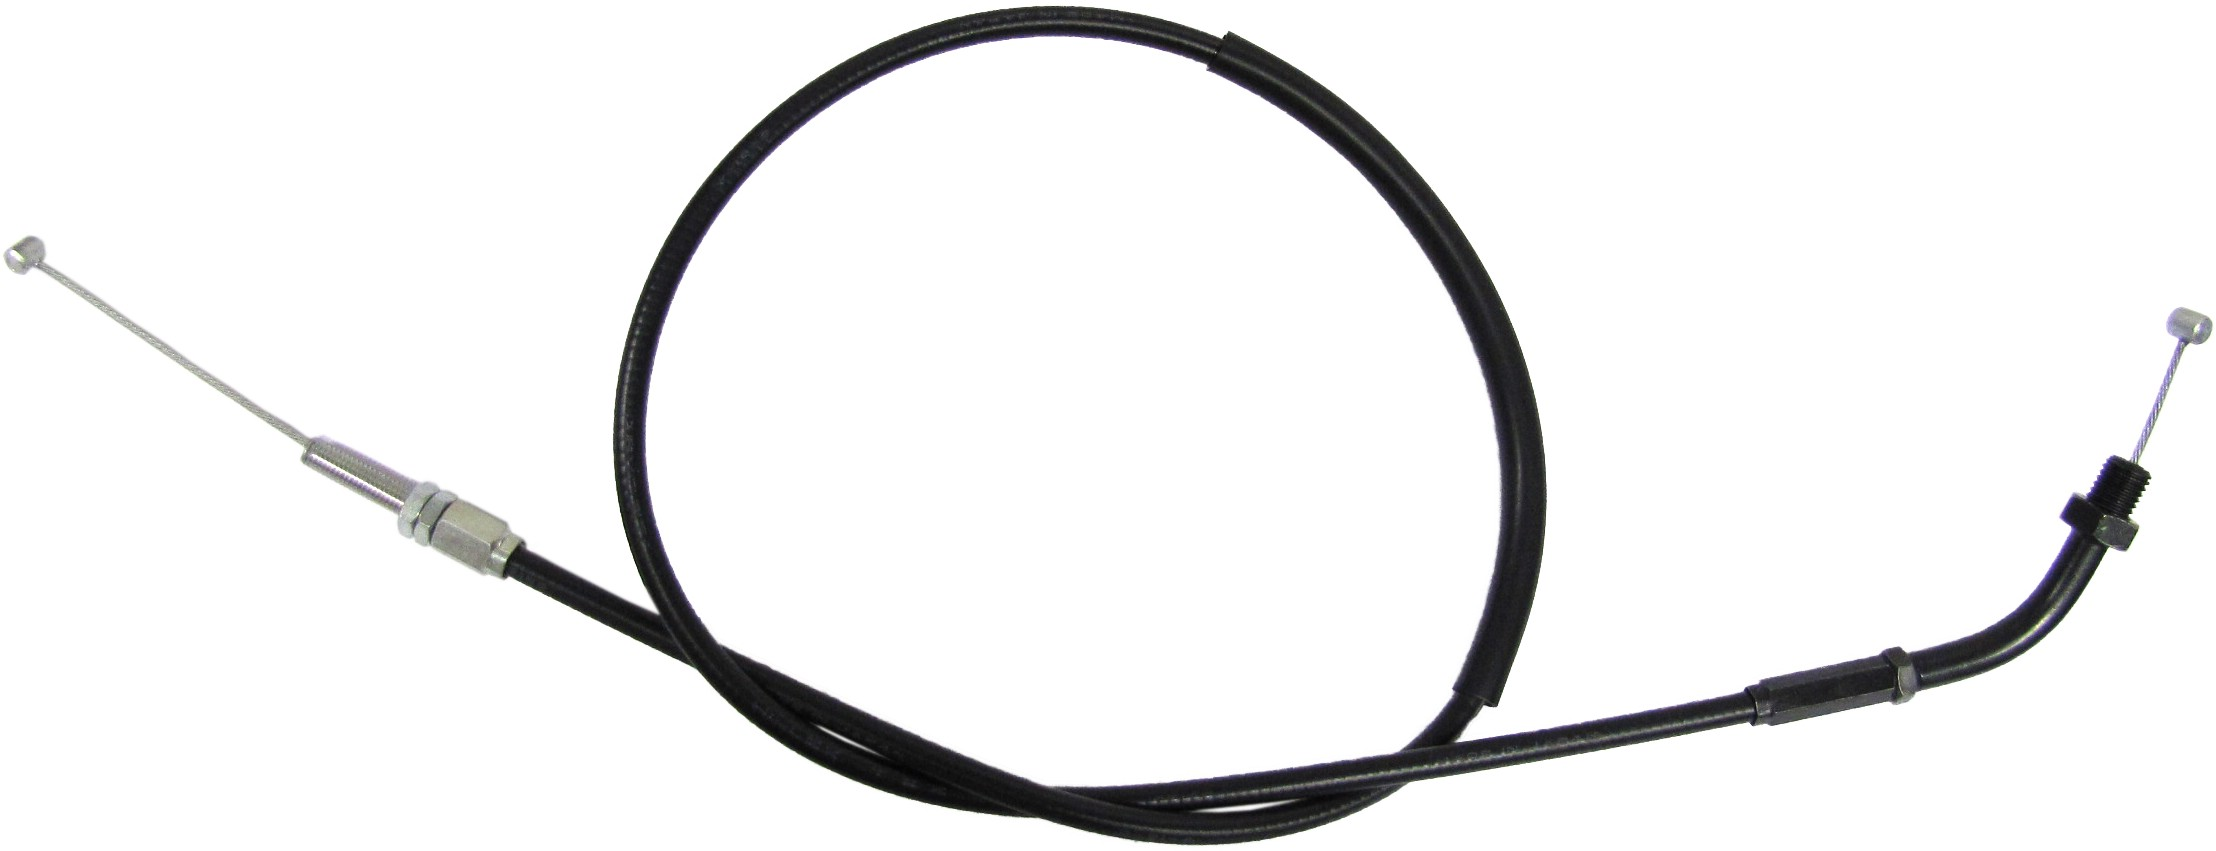 Fits Honda VF 400 F (UK) 1983-1985 Throttle Cable or Pull